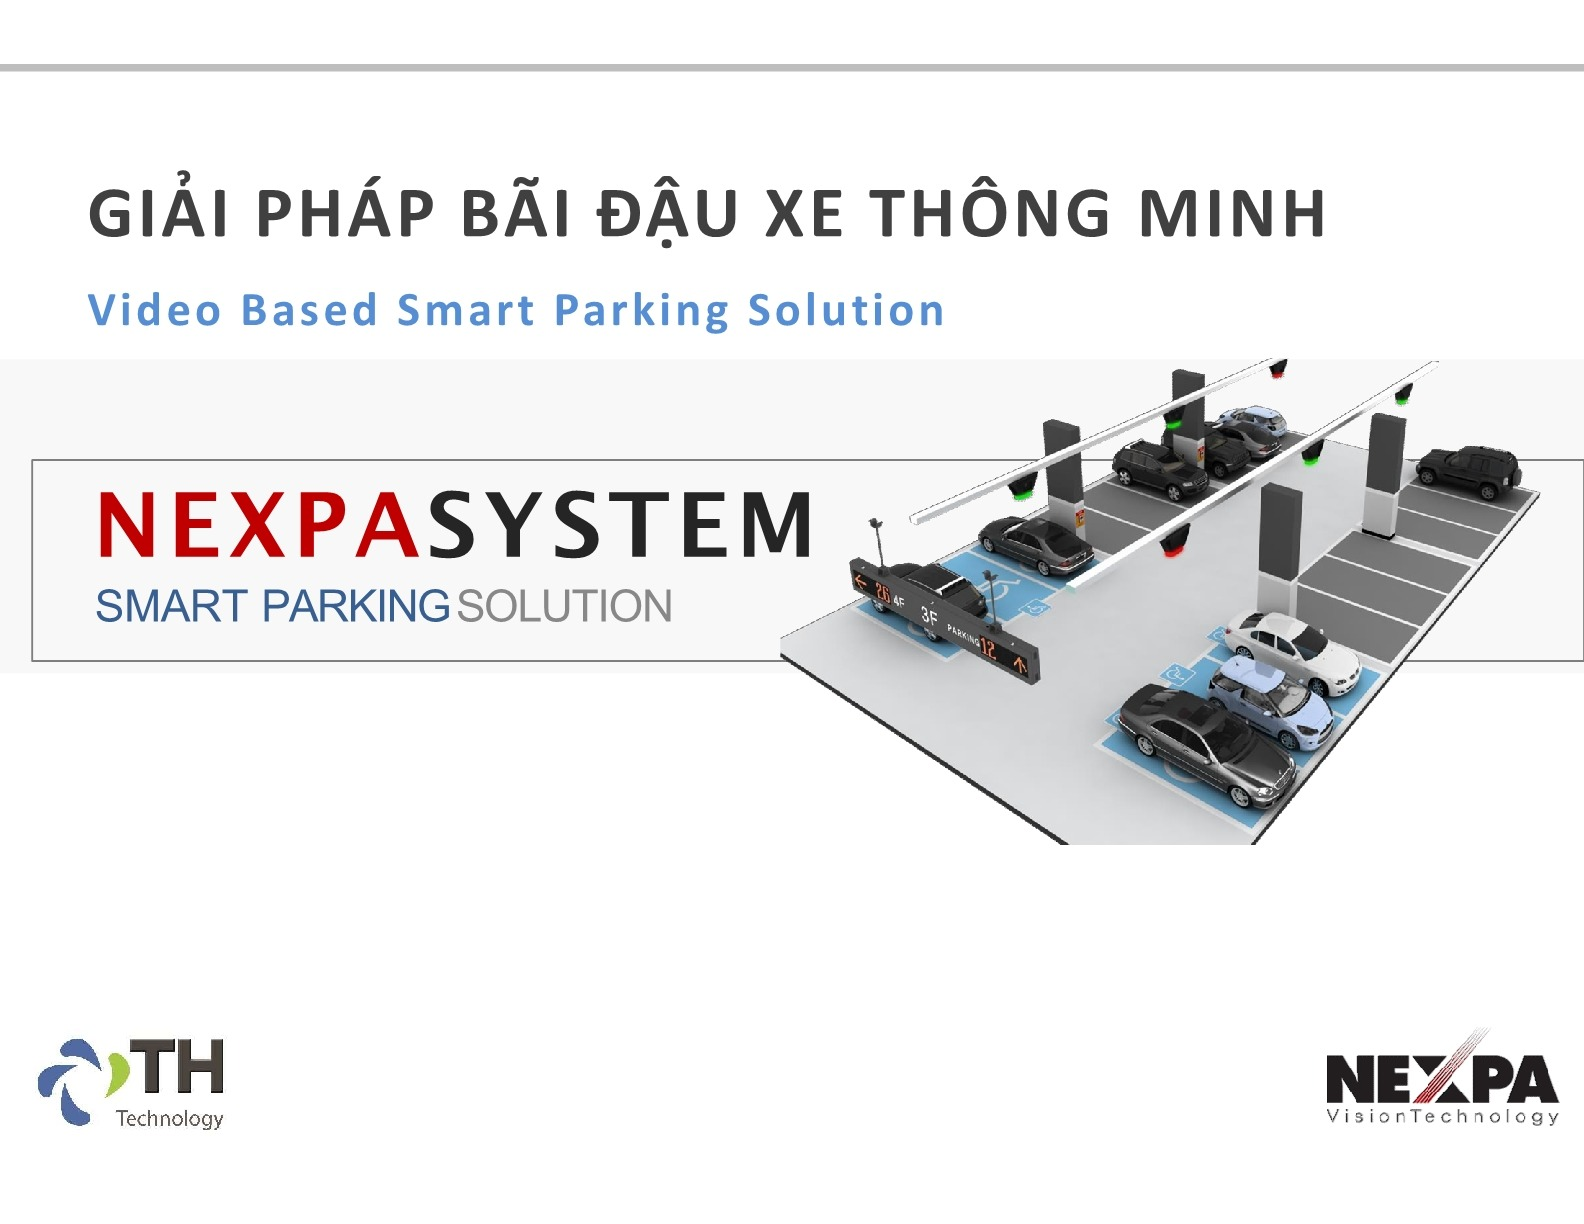 Nexpa Video Based Smart Parking